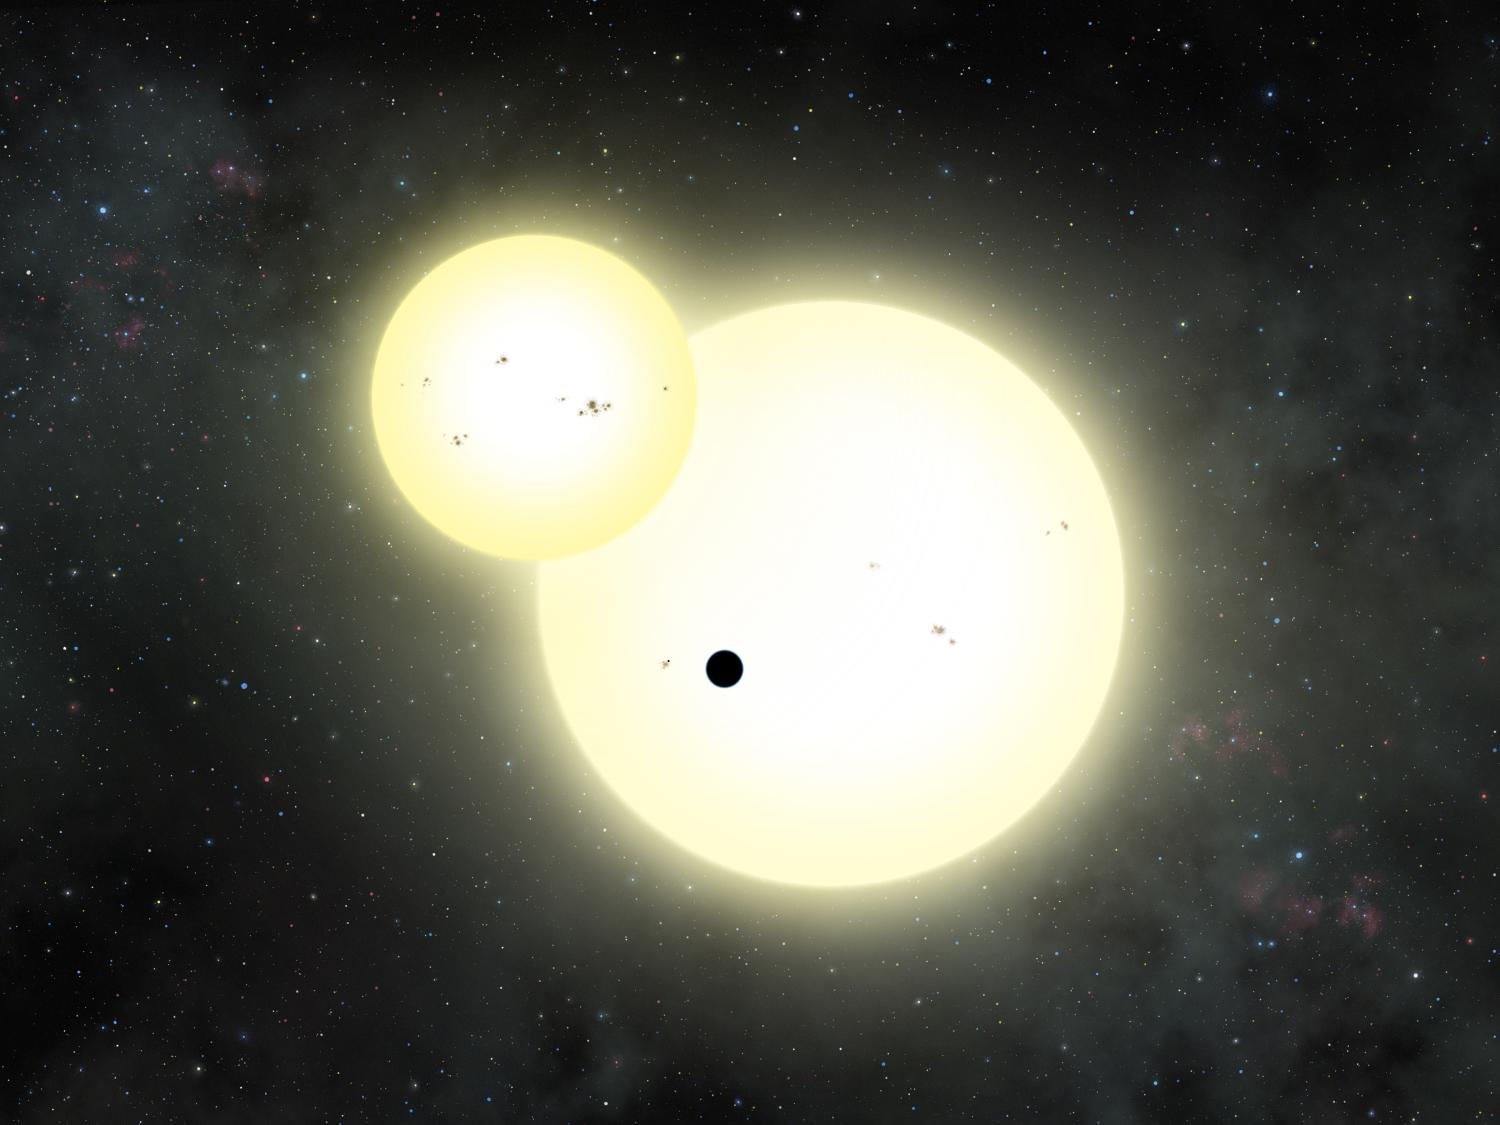 newest planets discovered - photo #26